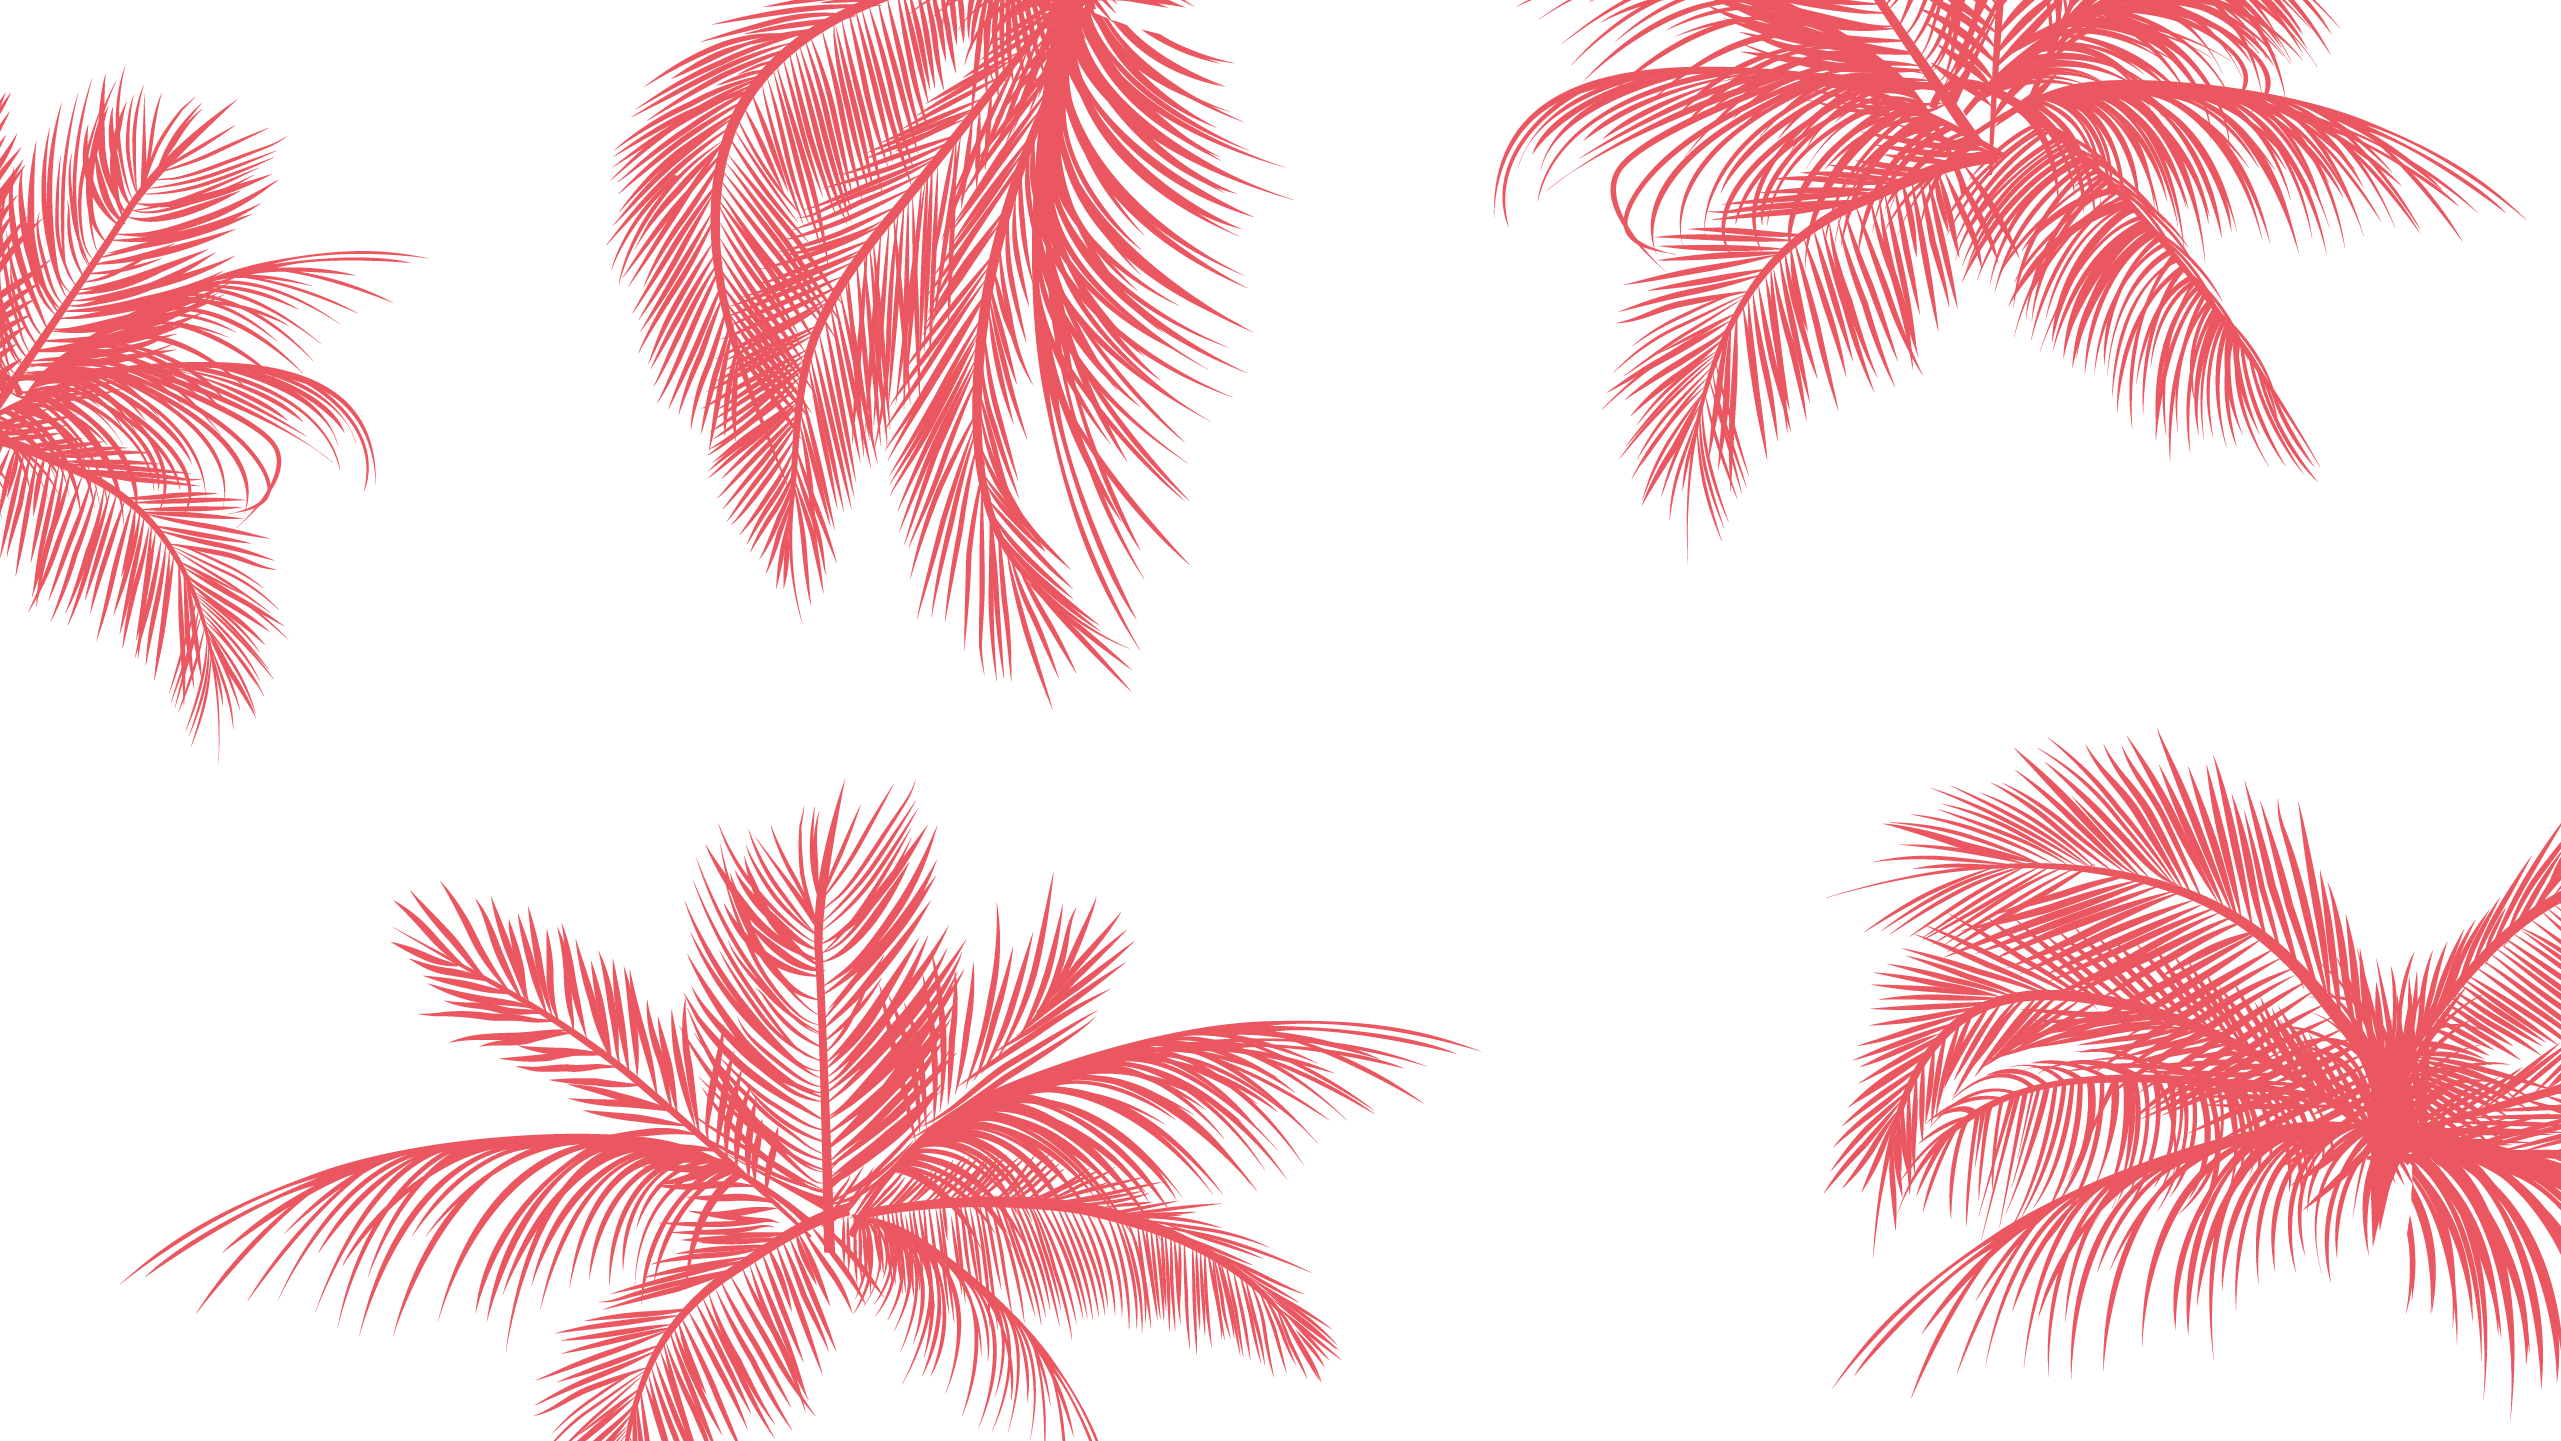 May Wallpaper 06   Desktop Wallpaper Pink Palm Trees 503288 2561x1441